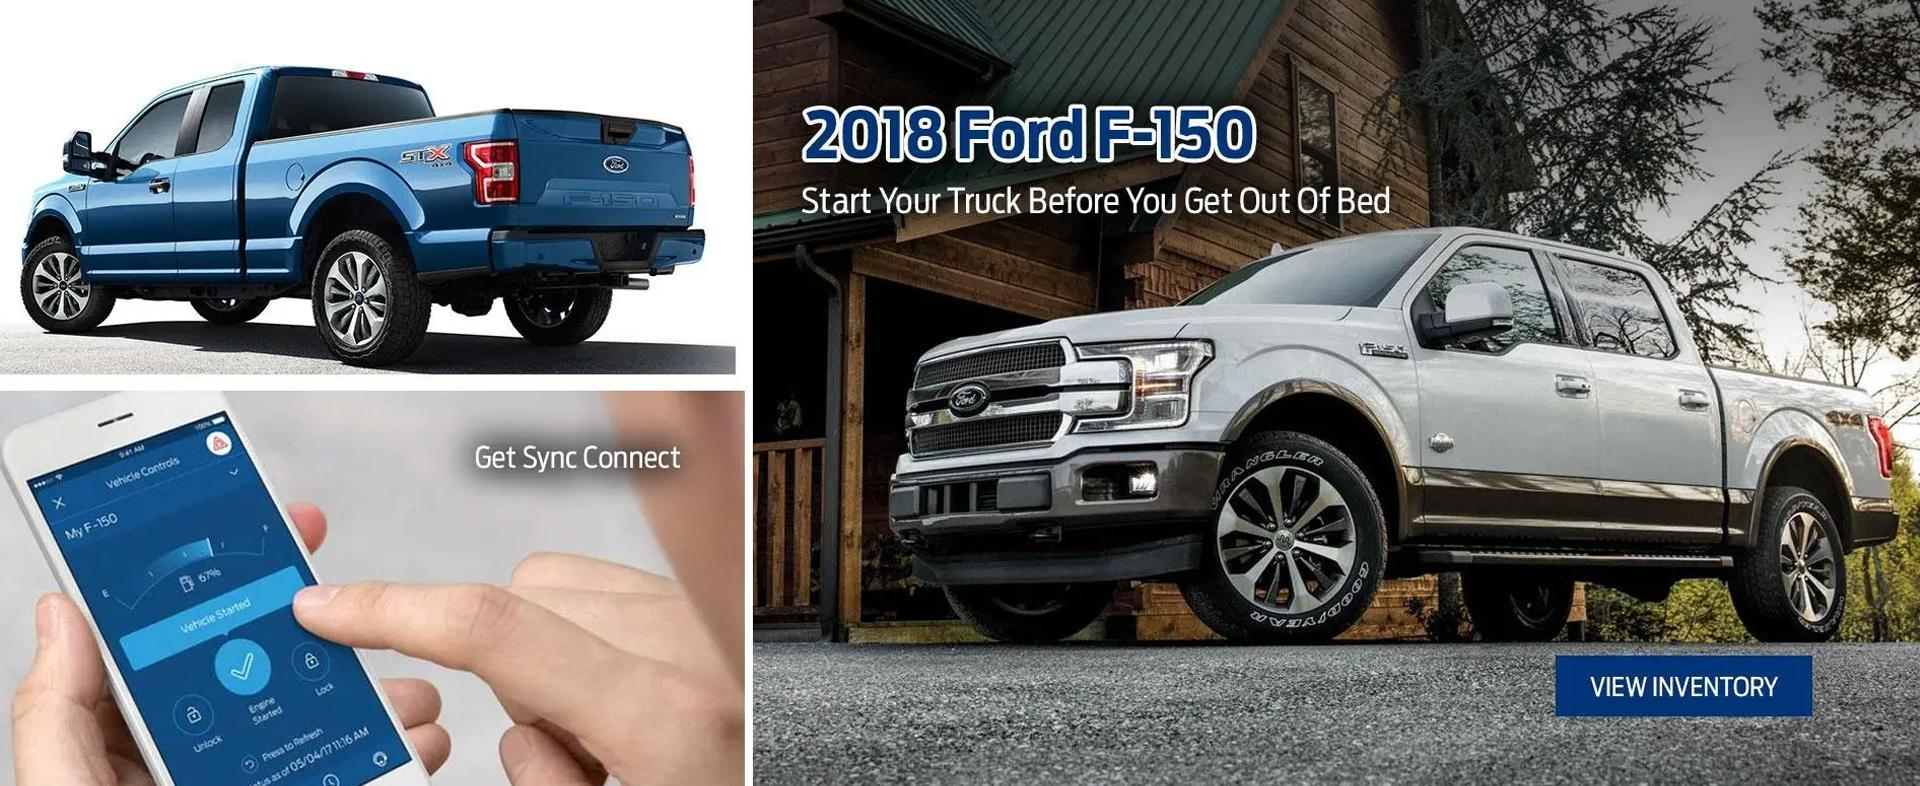 Ford Home image